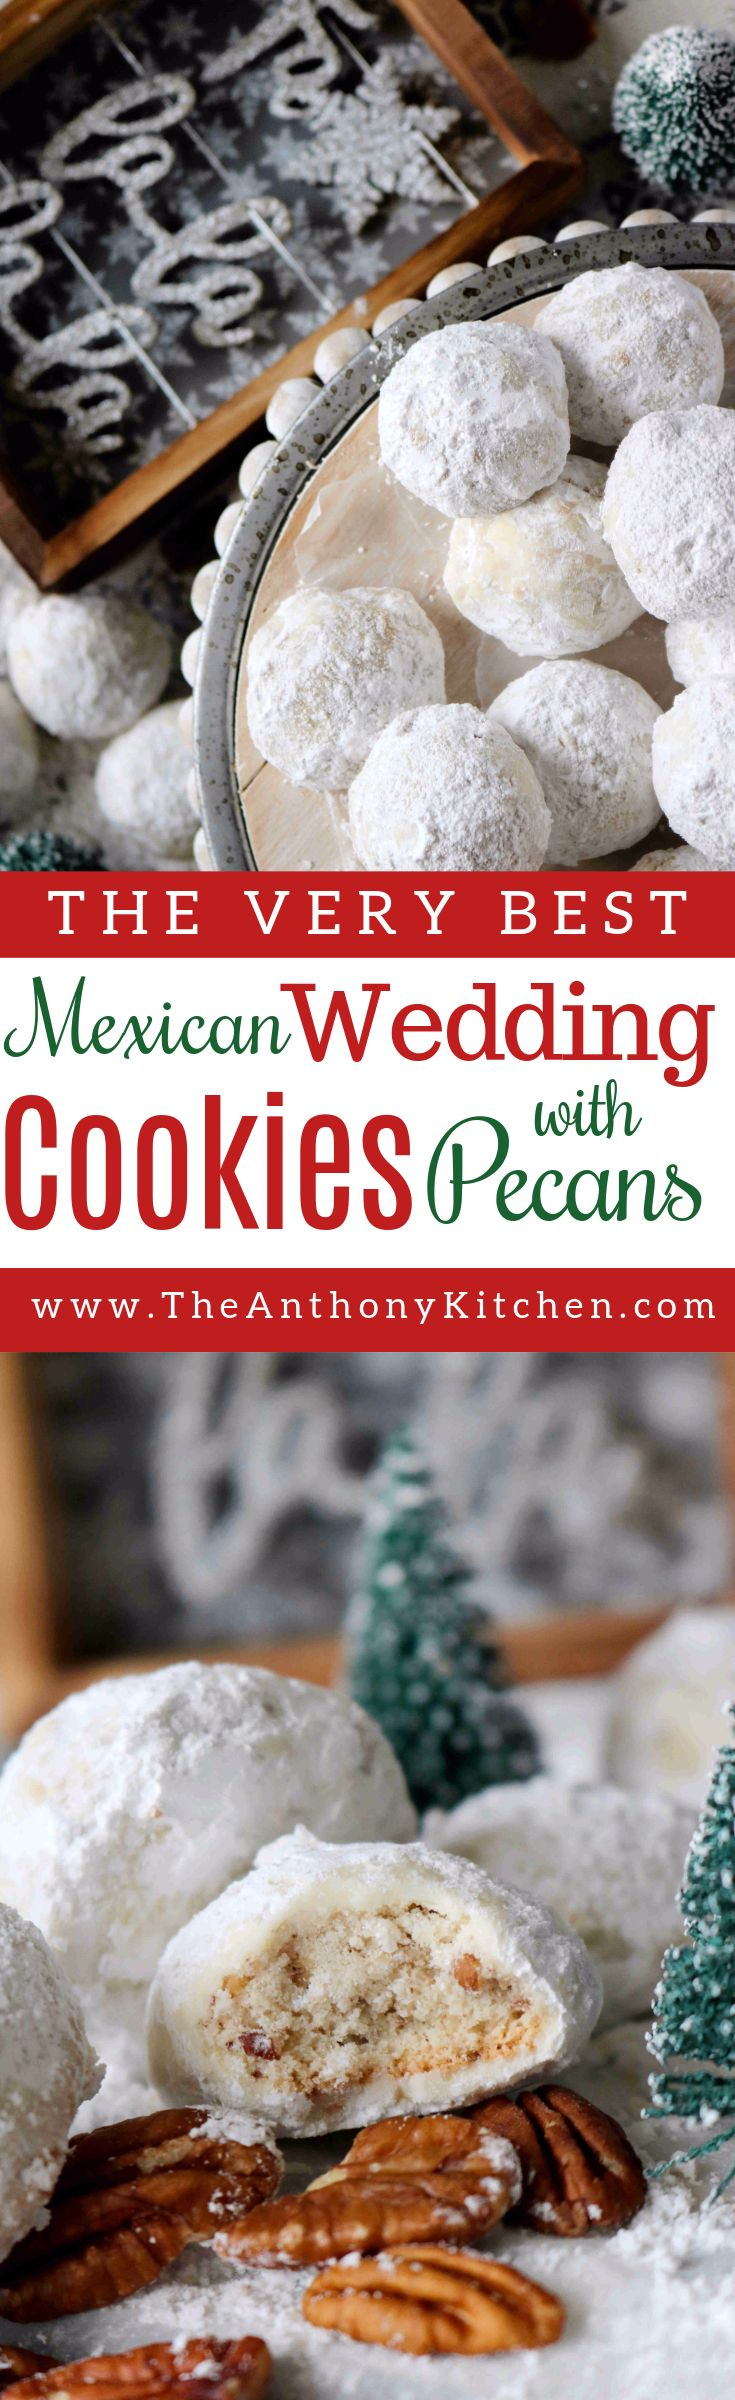 A recipe for Mexican Wedding Cookies (also know as snowball cookies), a buttery, melt-in-your-mouth cookie rolled in powdered sugar.